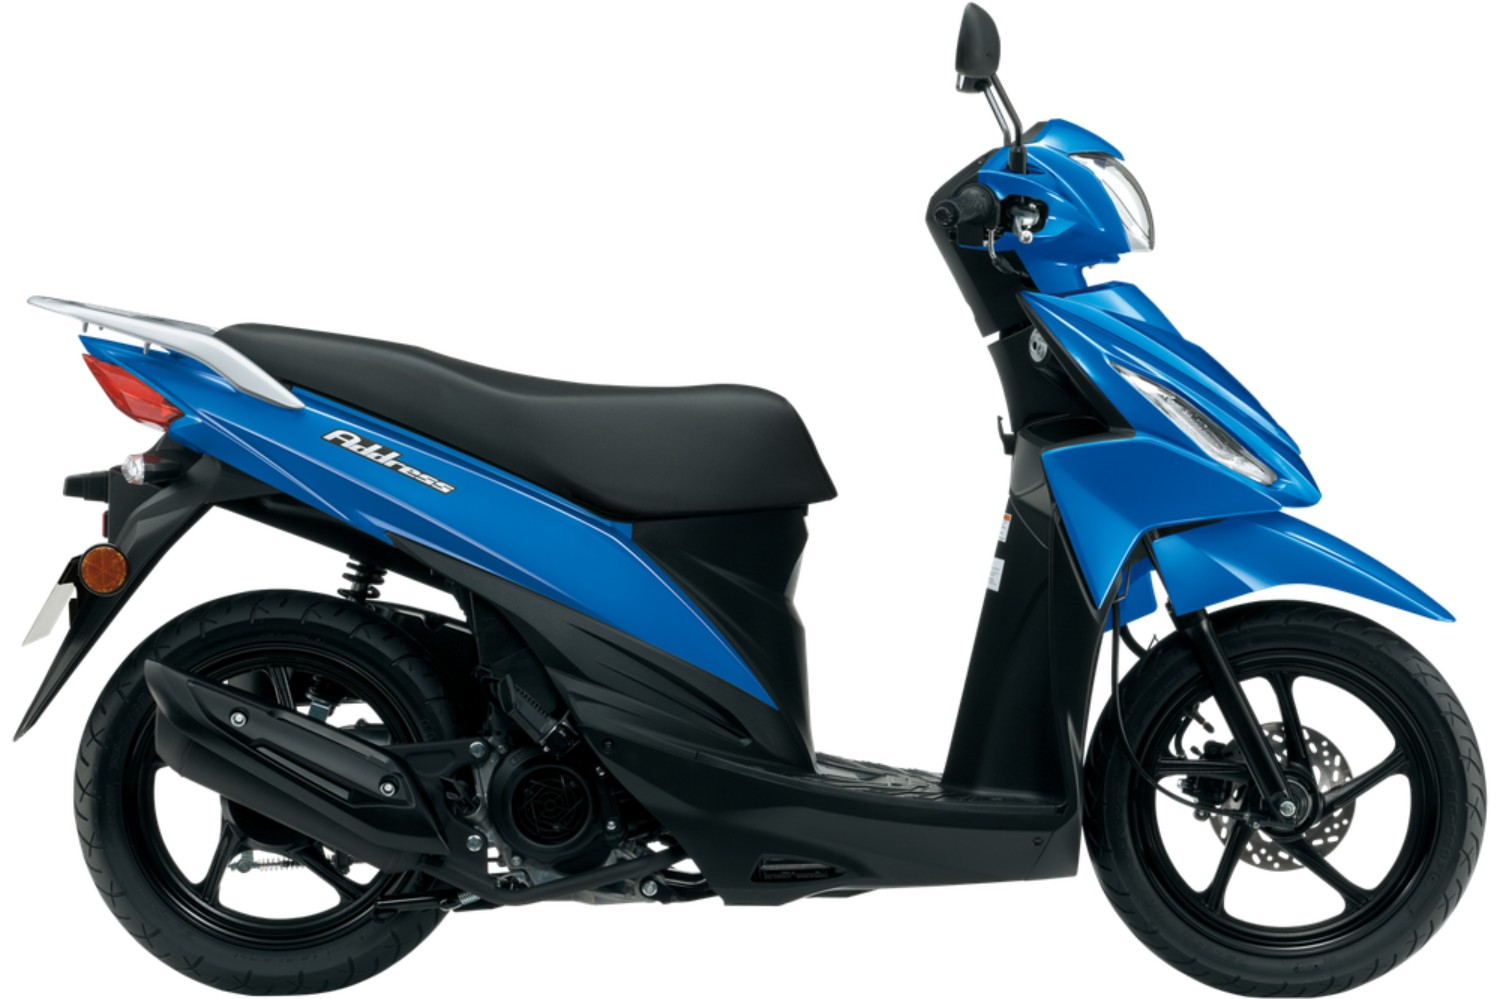 Suzuki UK 110 Address